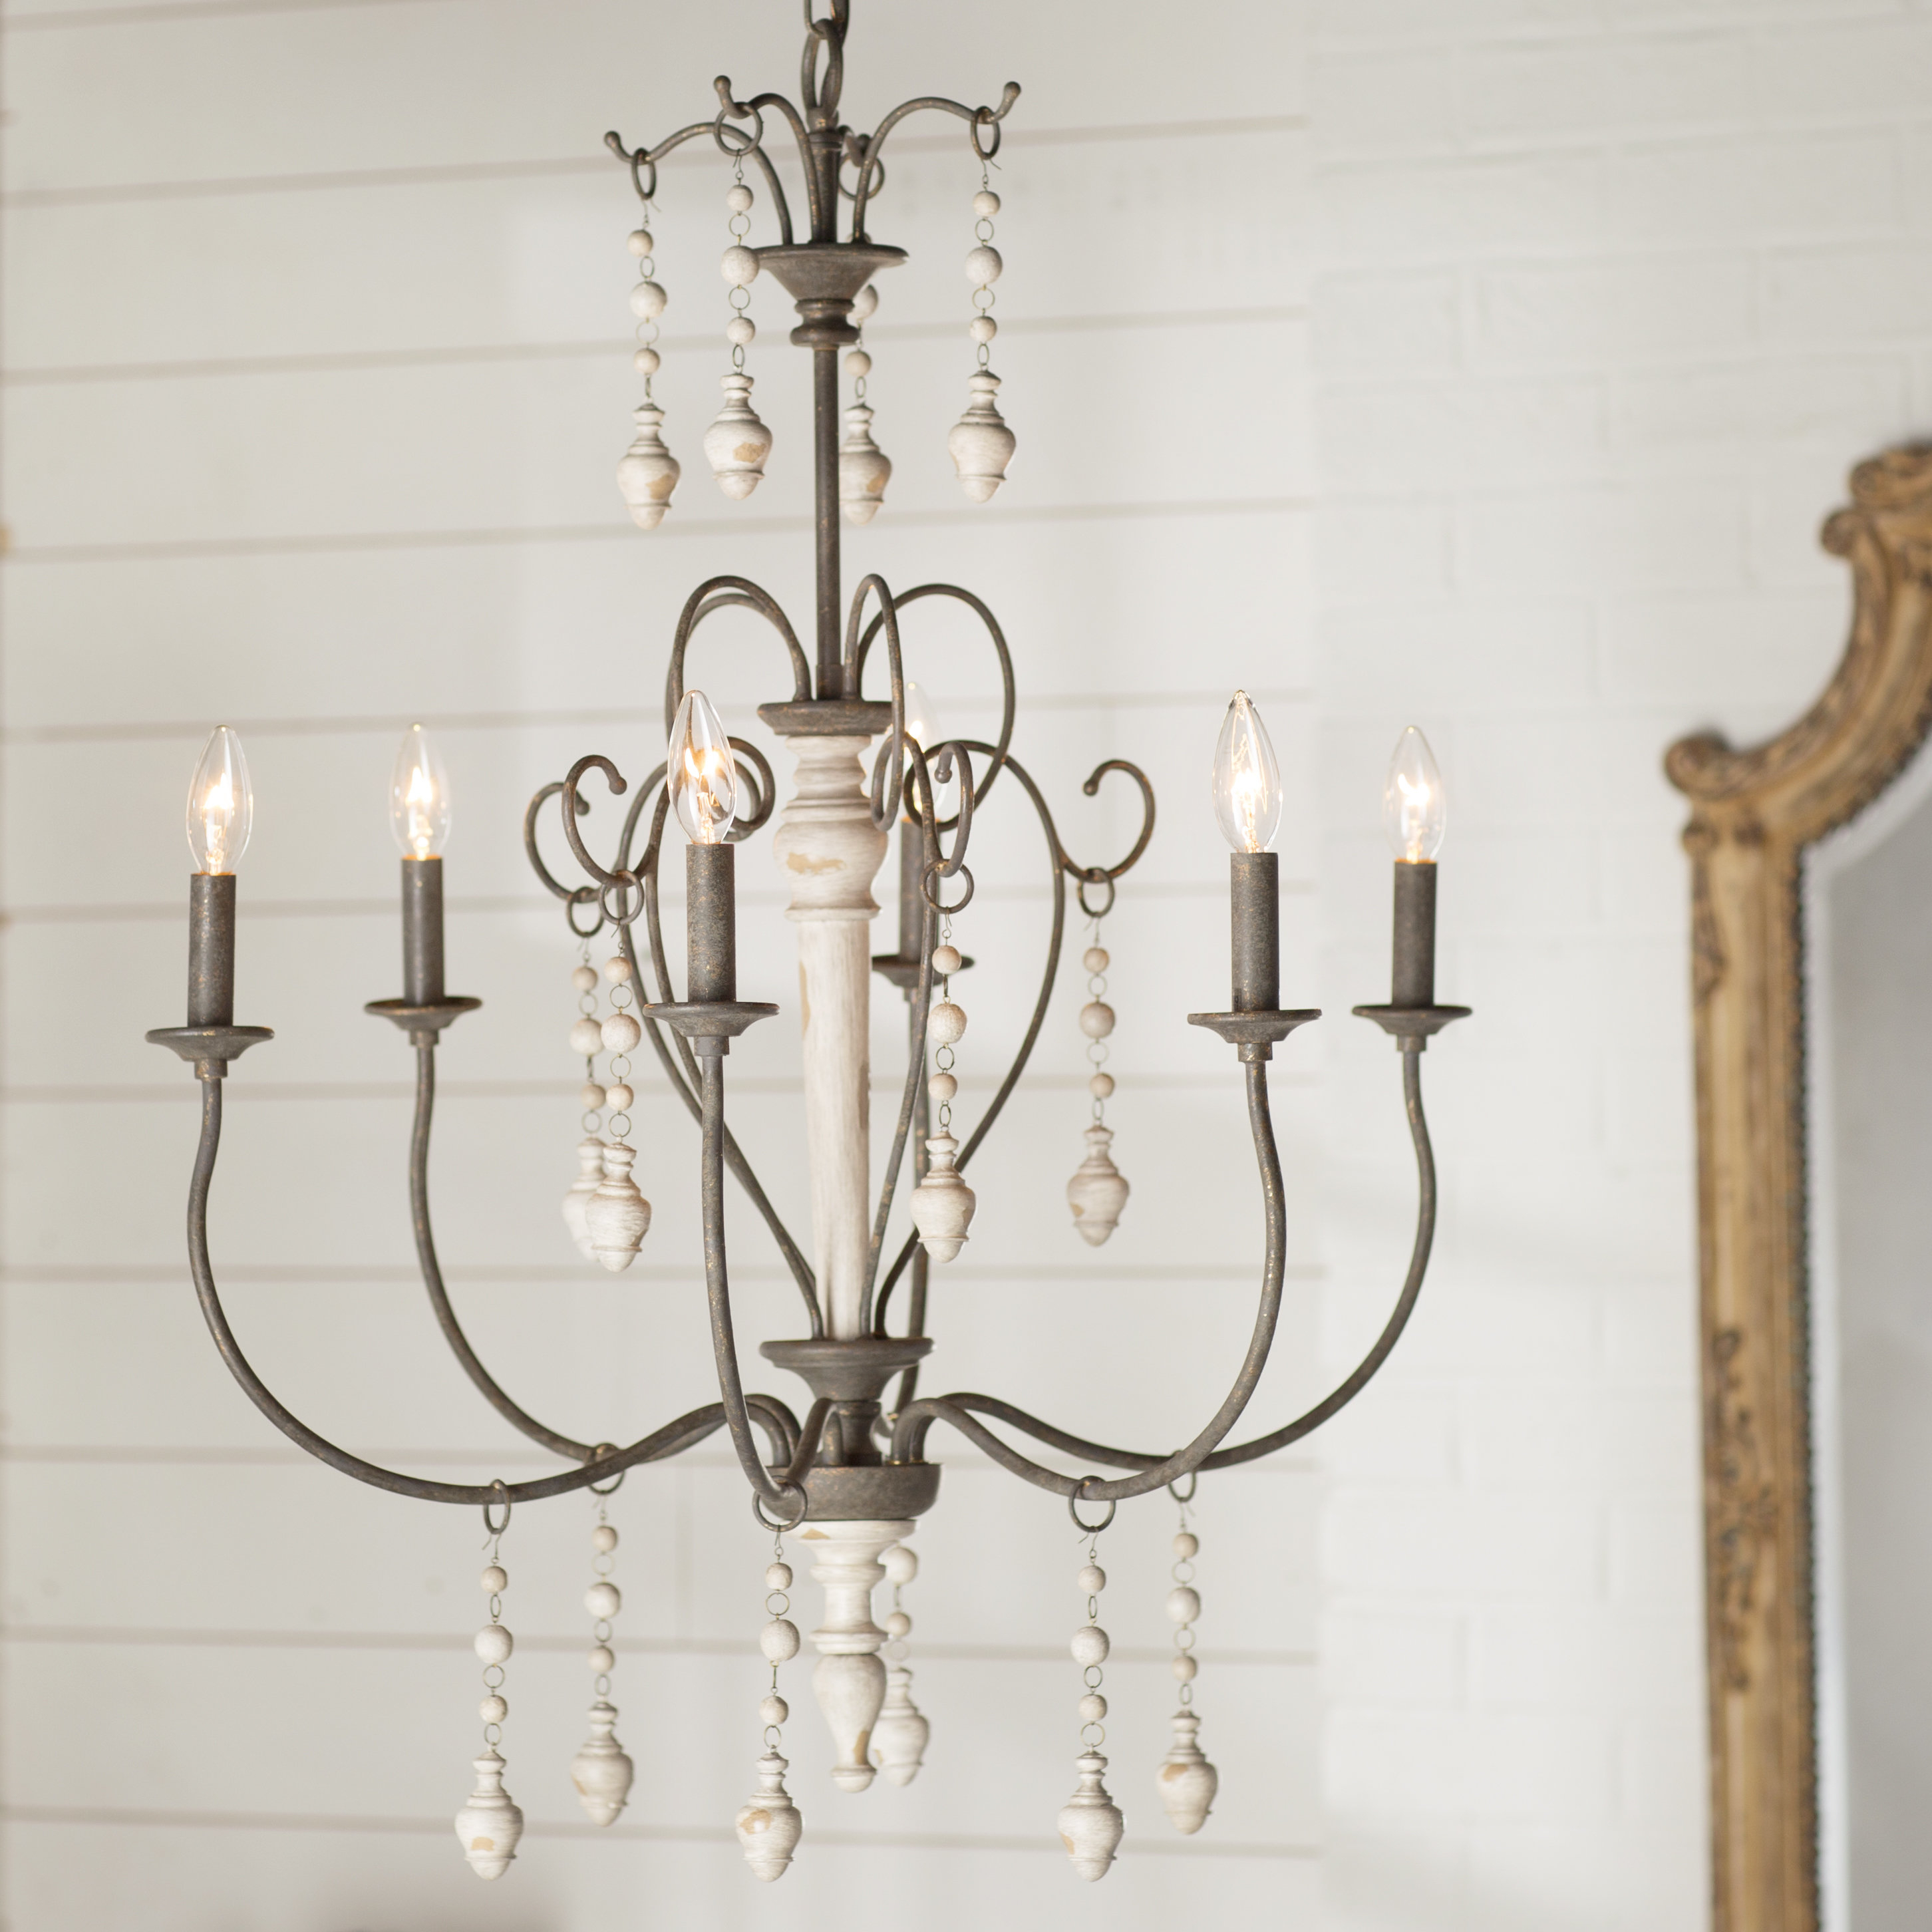 Bouchette Traditional 6 Light Candle Style Chandelier Regarding Famous Shaylee 8 Light Candle Style Chandeliers (View 19 of 25)